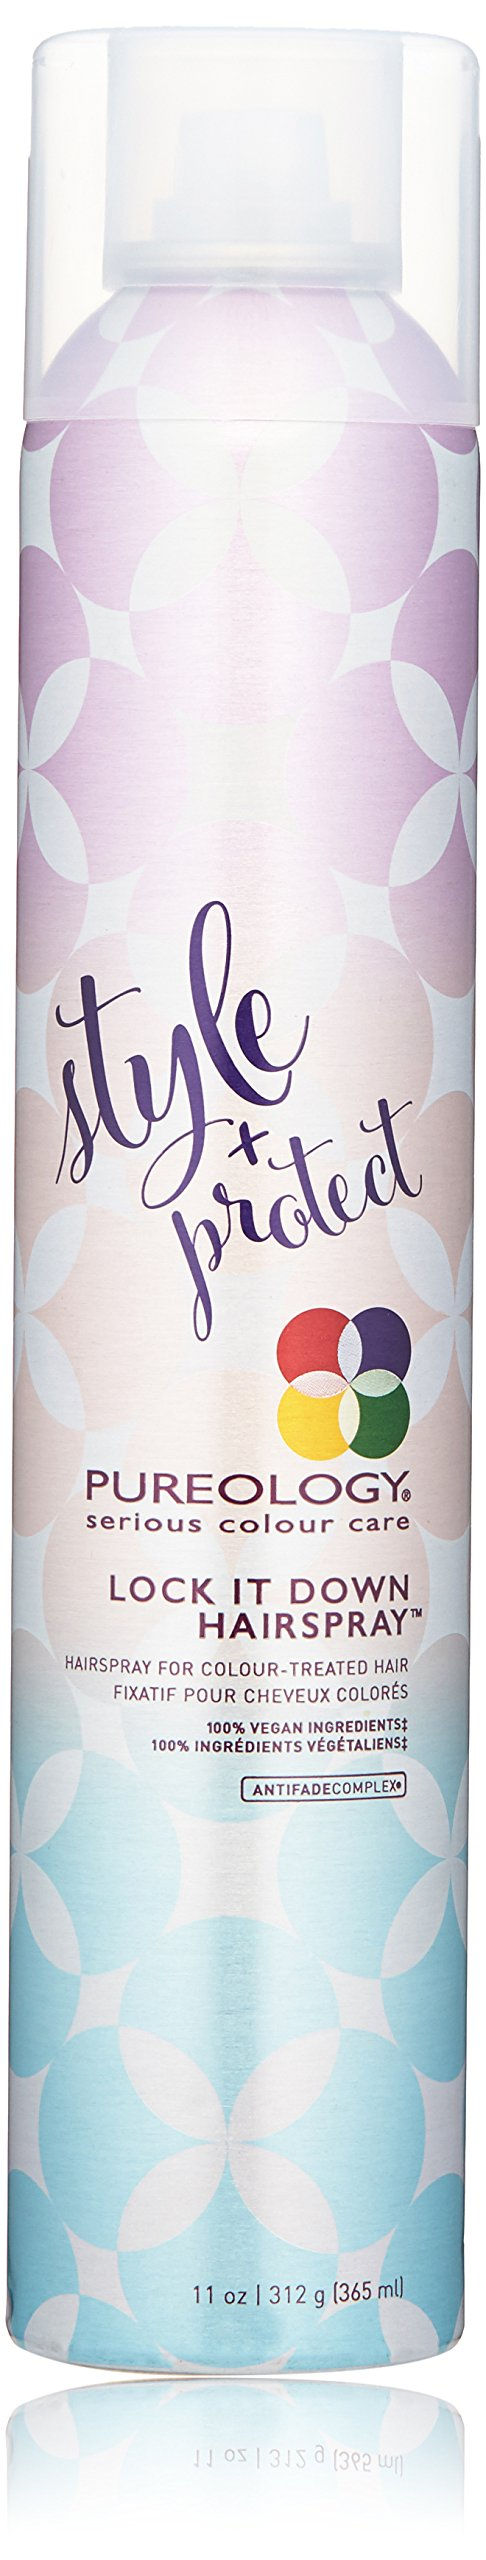 Pureology Style Protect Lock It Down Hairspray, 11 oz by Pureology